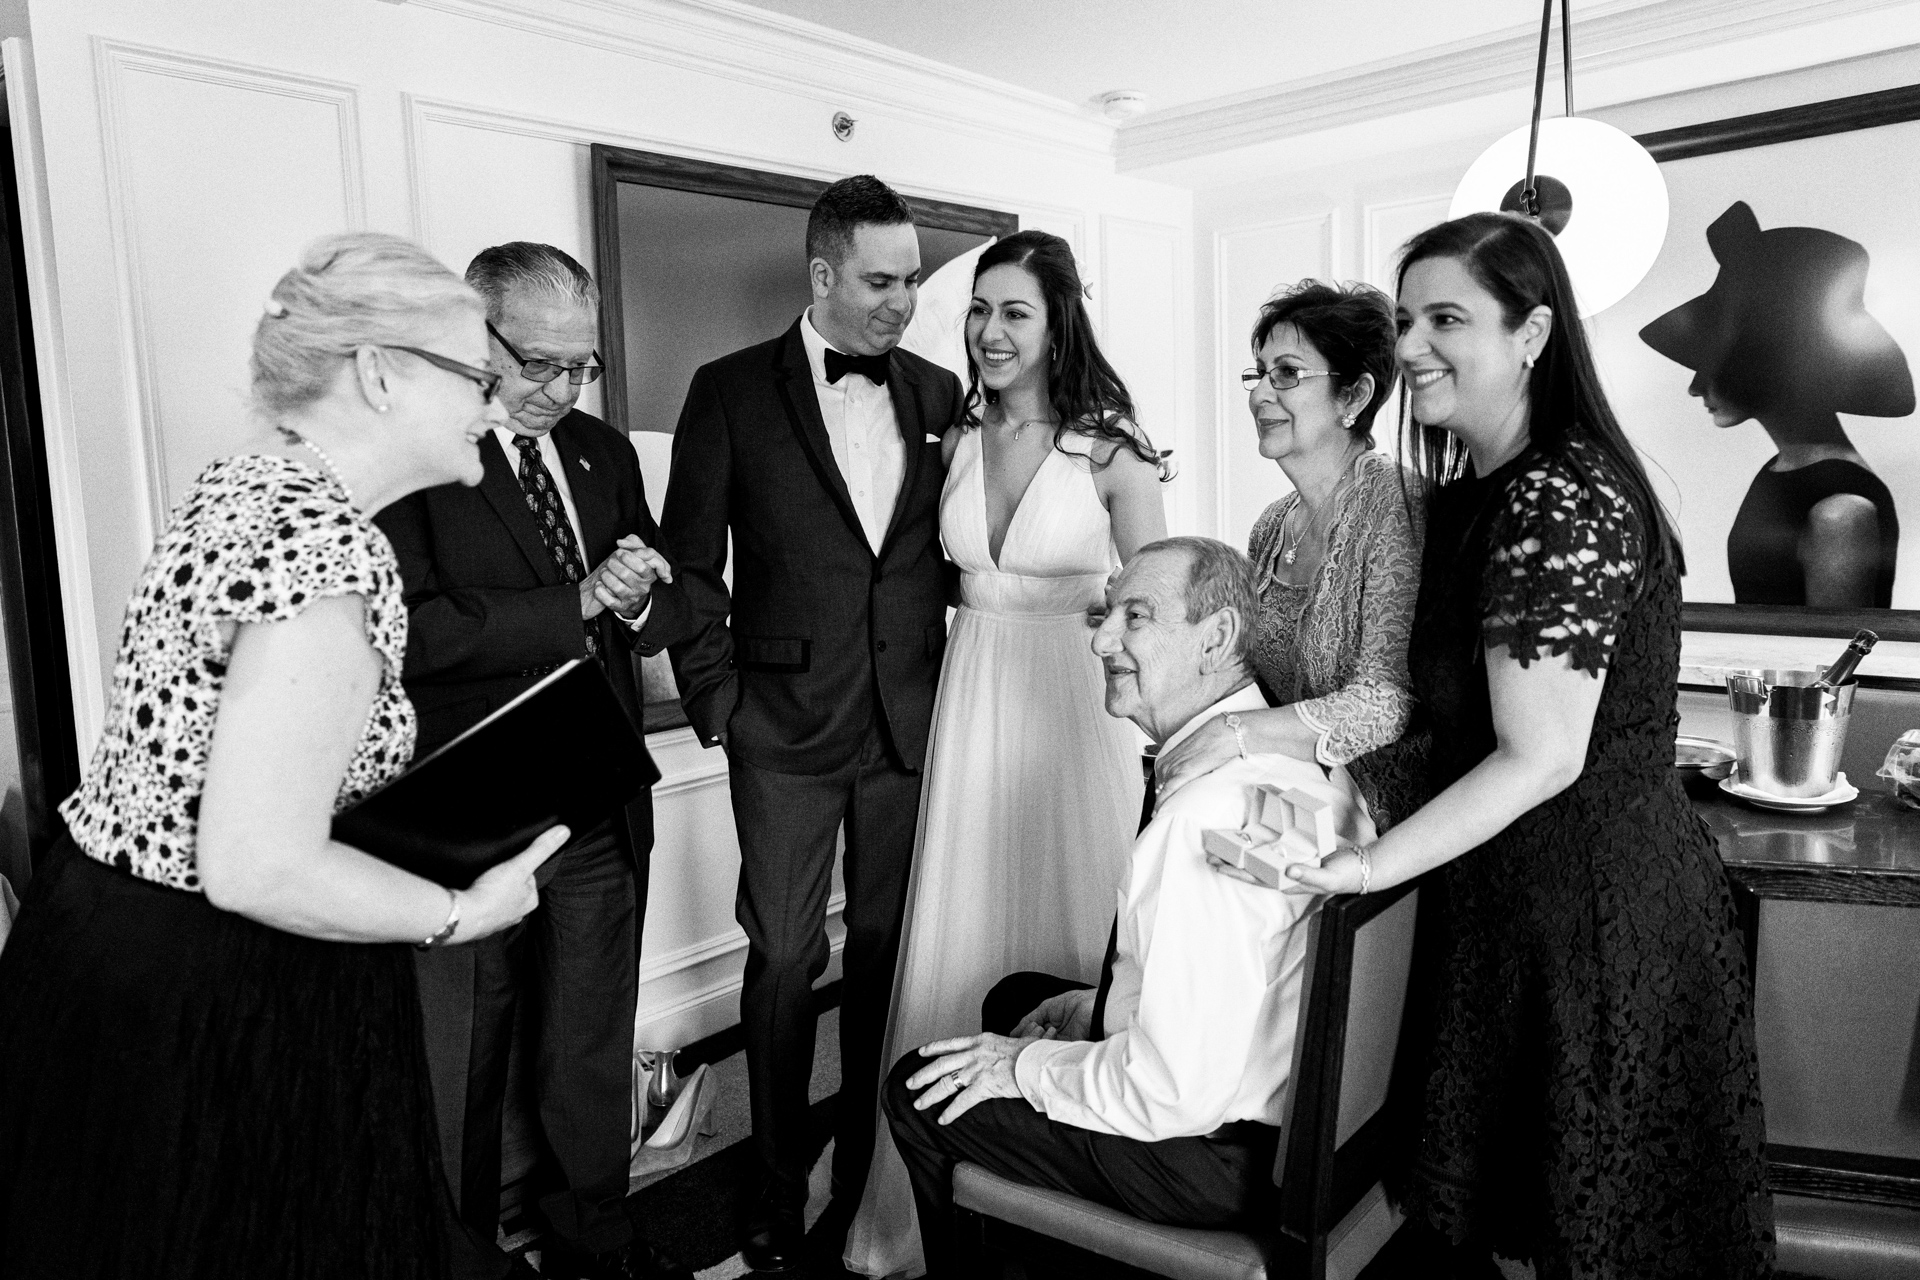 The bride father began to show signs of a stroke, so the officiant Rev. Annie Lawrence married the couple in a quick ceremony at the Ritz Carlton - Central Park